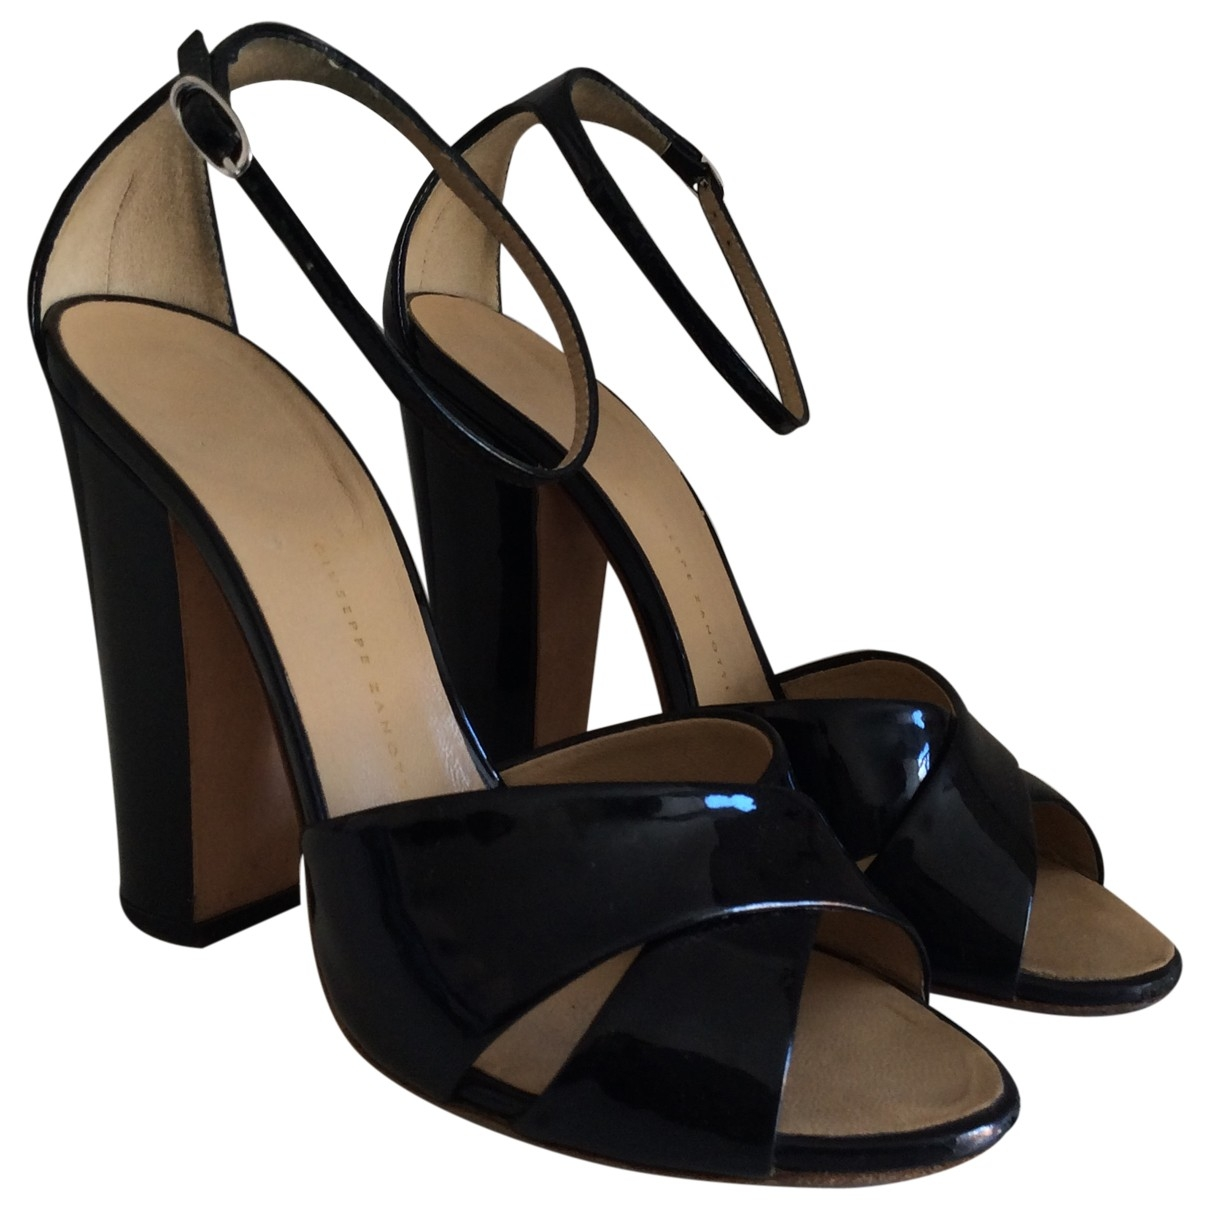 Giuseppe Zanotti \N Black Patent leather Sandals for Women 36 EU